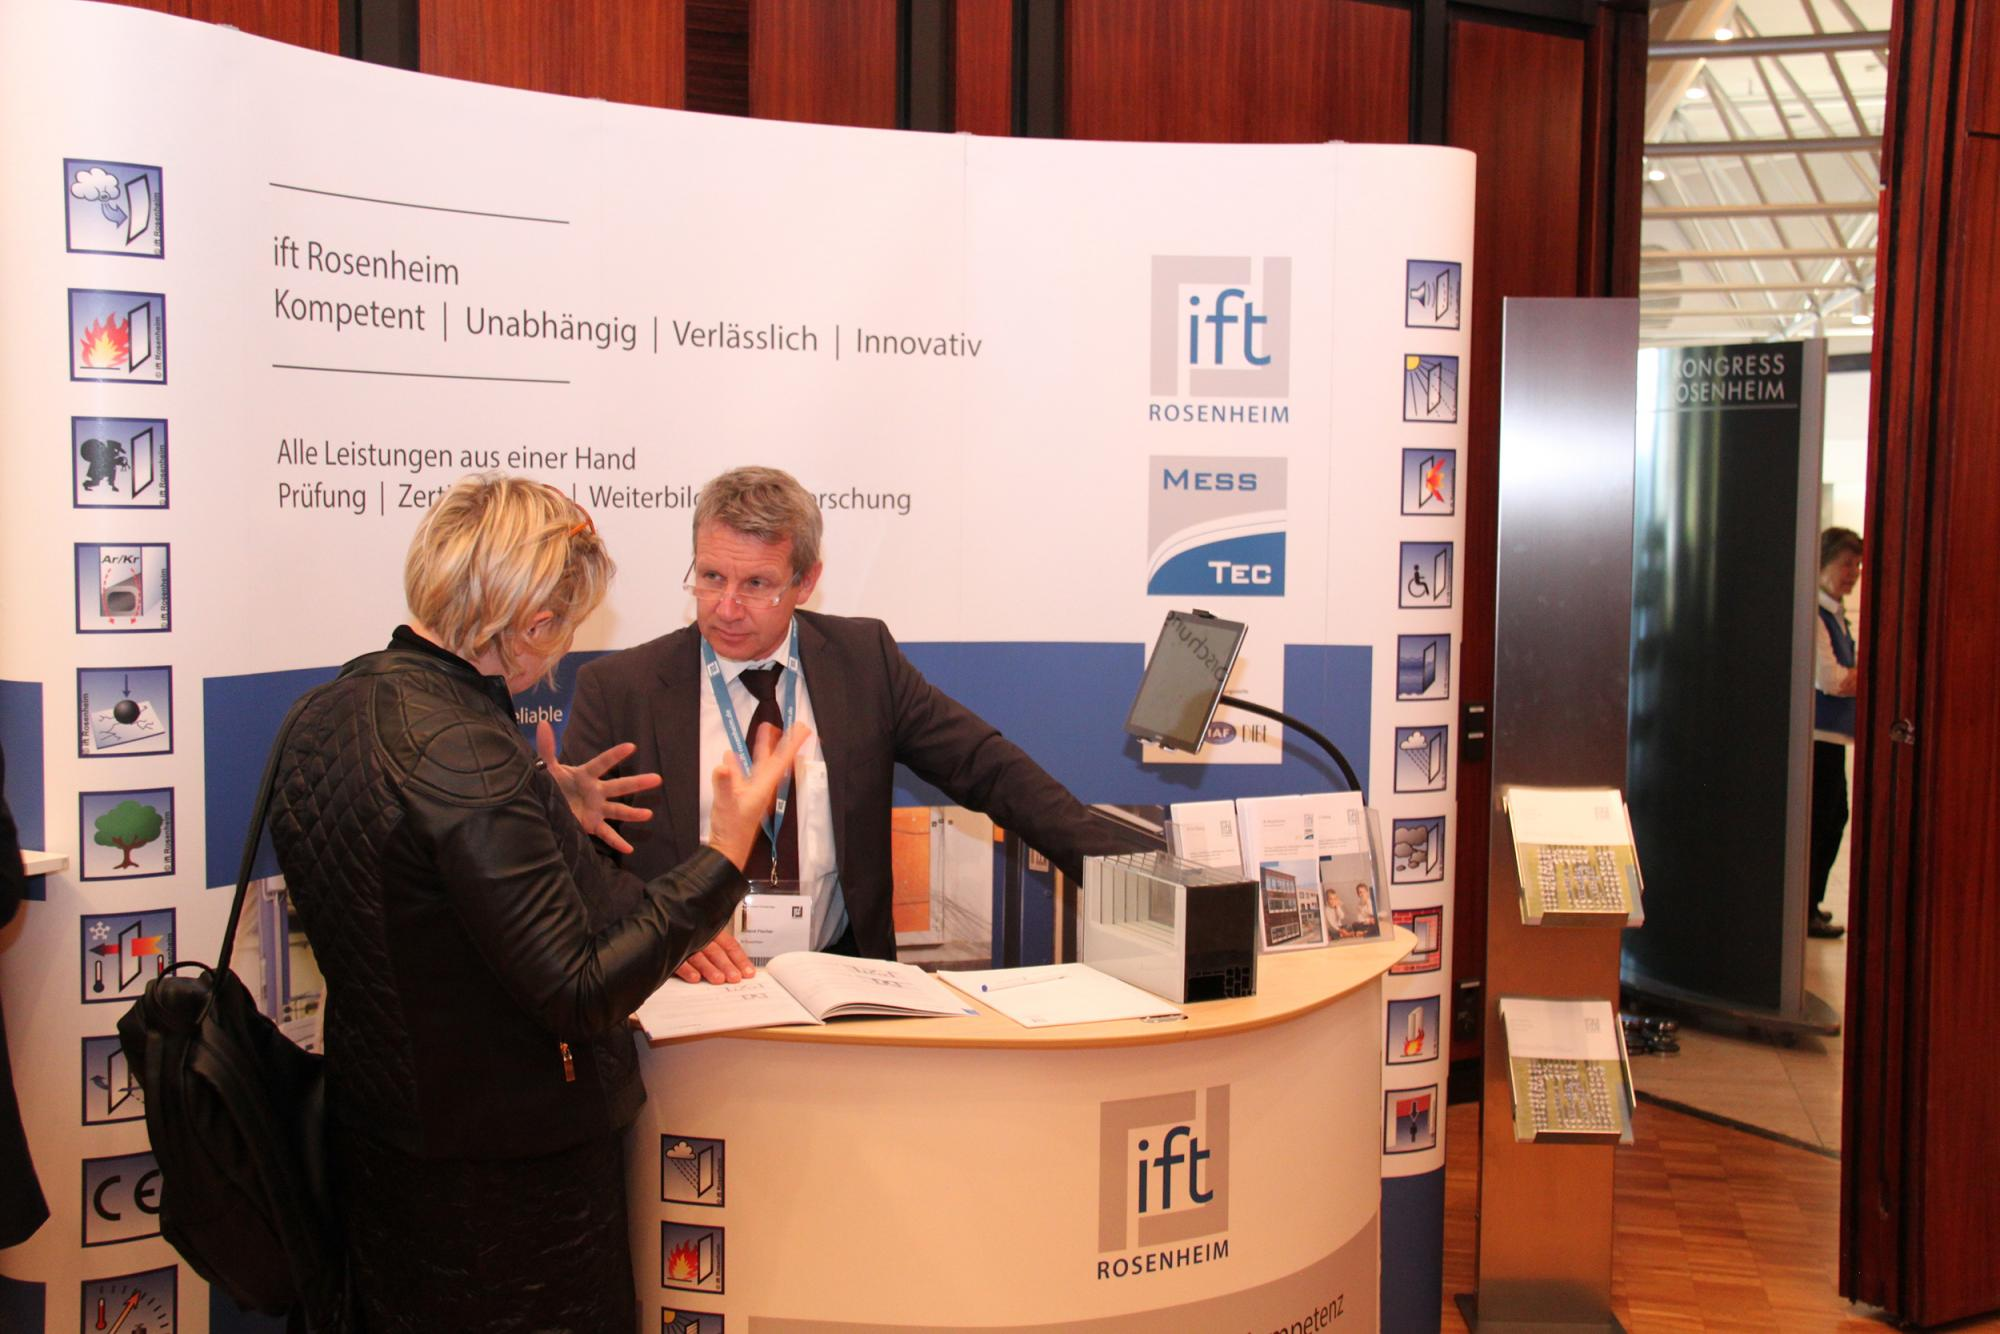 "Roland Fischer ""in dialogue"" with customers at the new ift Trade Fair stand including ift experts that can be reserved by ift customers flexibly for events. (Source: ift Rosenheim)"